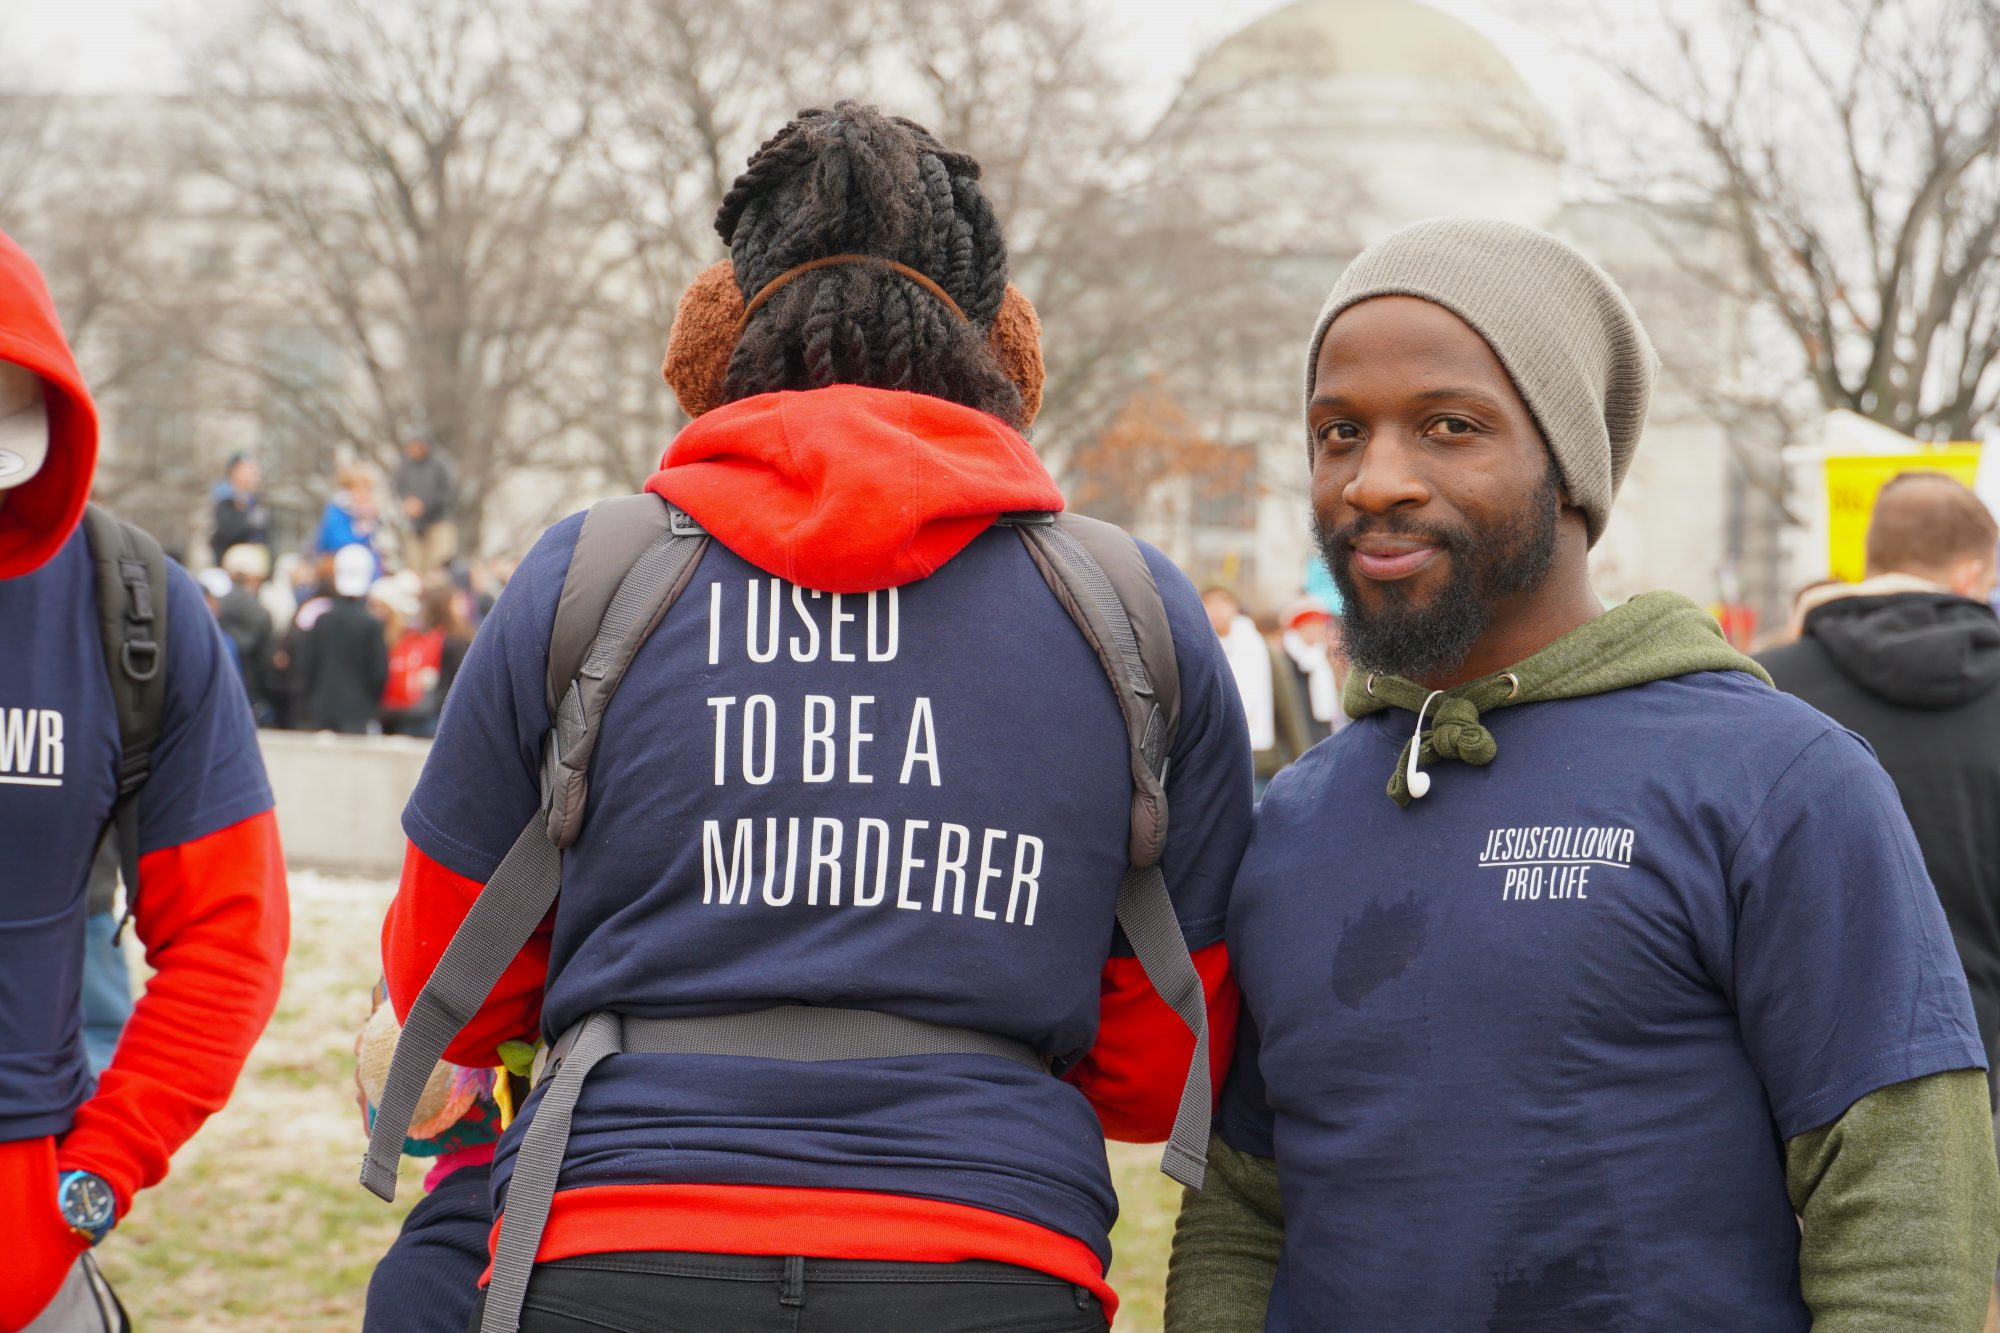 A woman who used to be pro-abortion now attends and supports the March for Life. (Ester Wells/MNS)